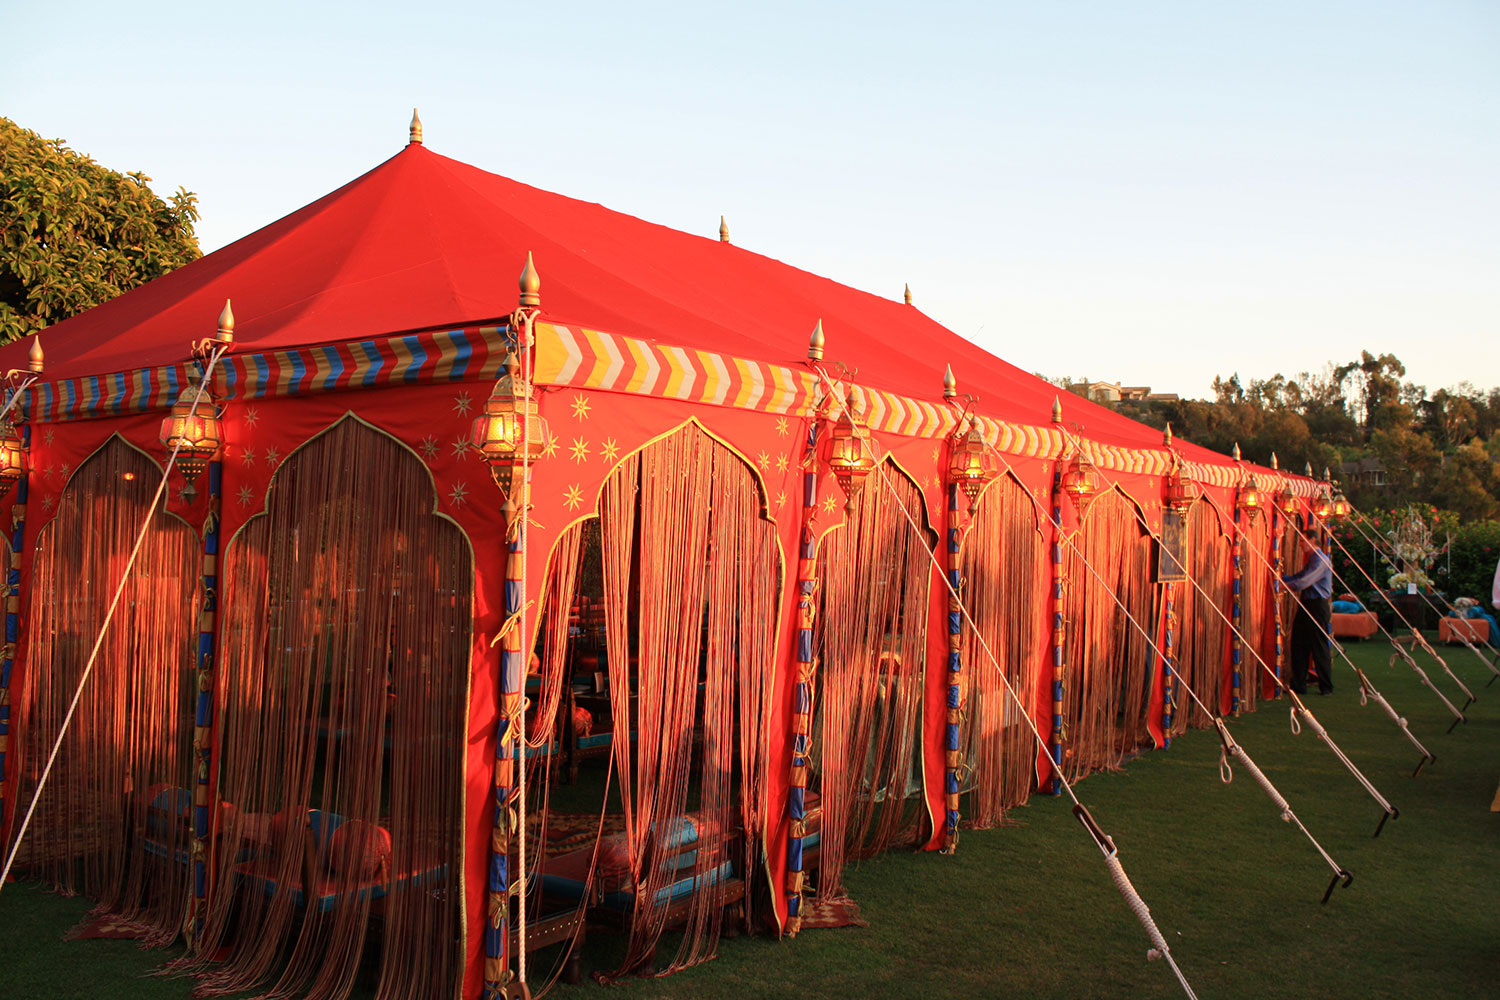 raj-tents-moroccan-theme-marrakech.jpg